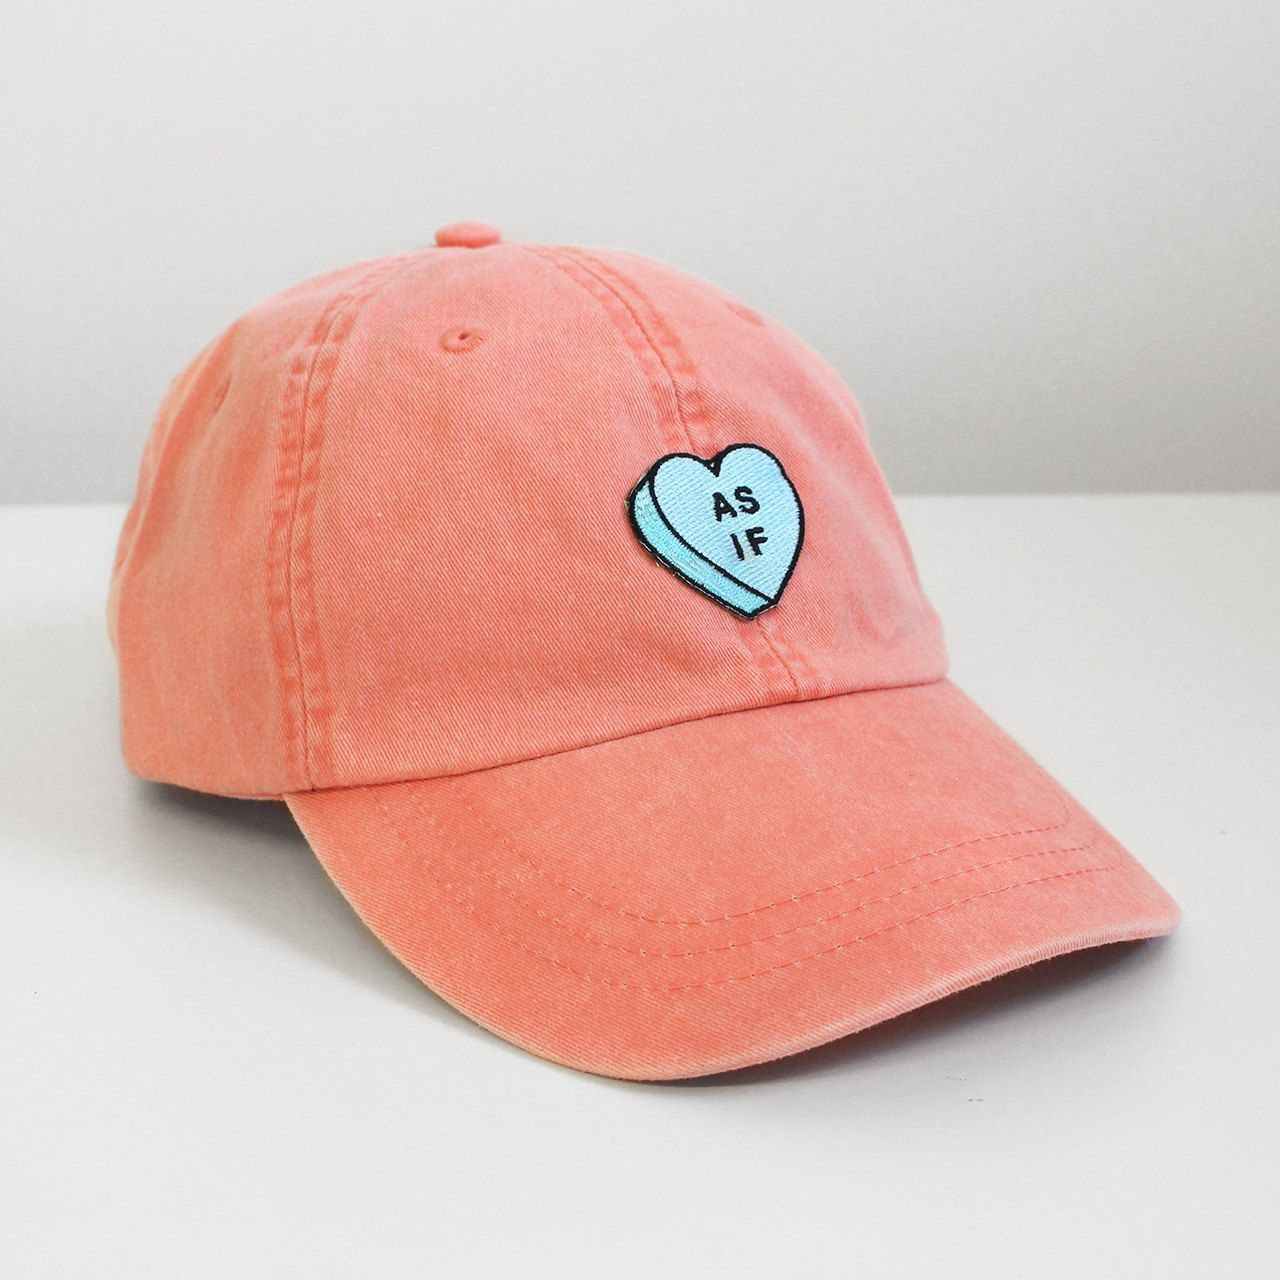 21814eda5bdb4 As If heart candy embroidered baseball hat cap - feminist pastel ...